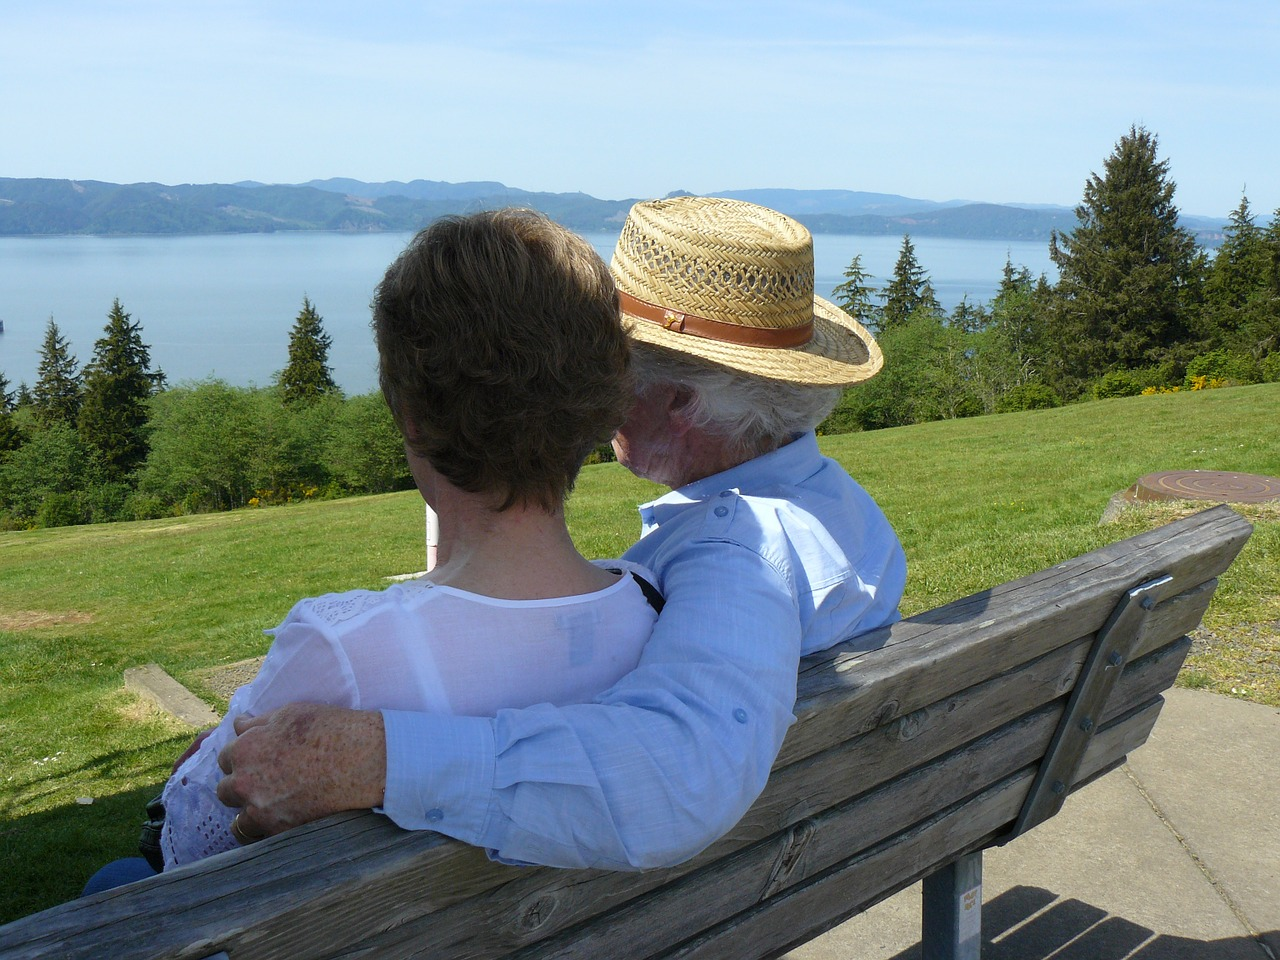 couple, enjoying the view, sitting, bench